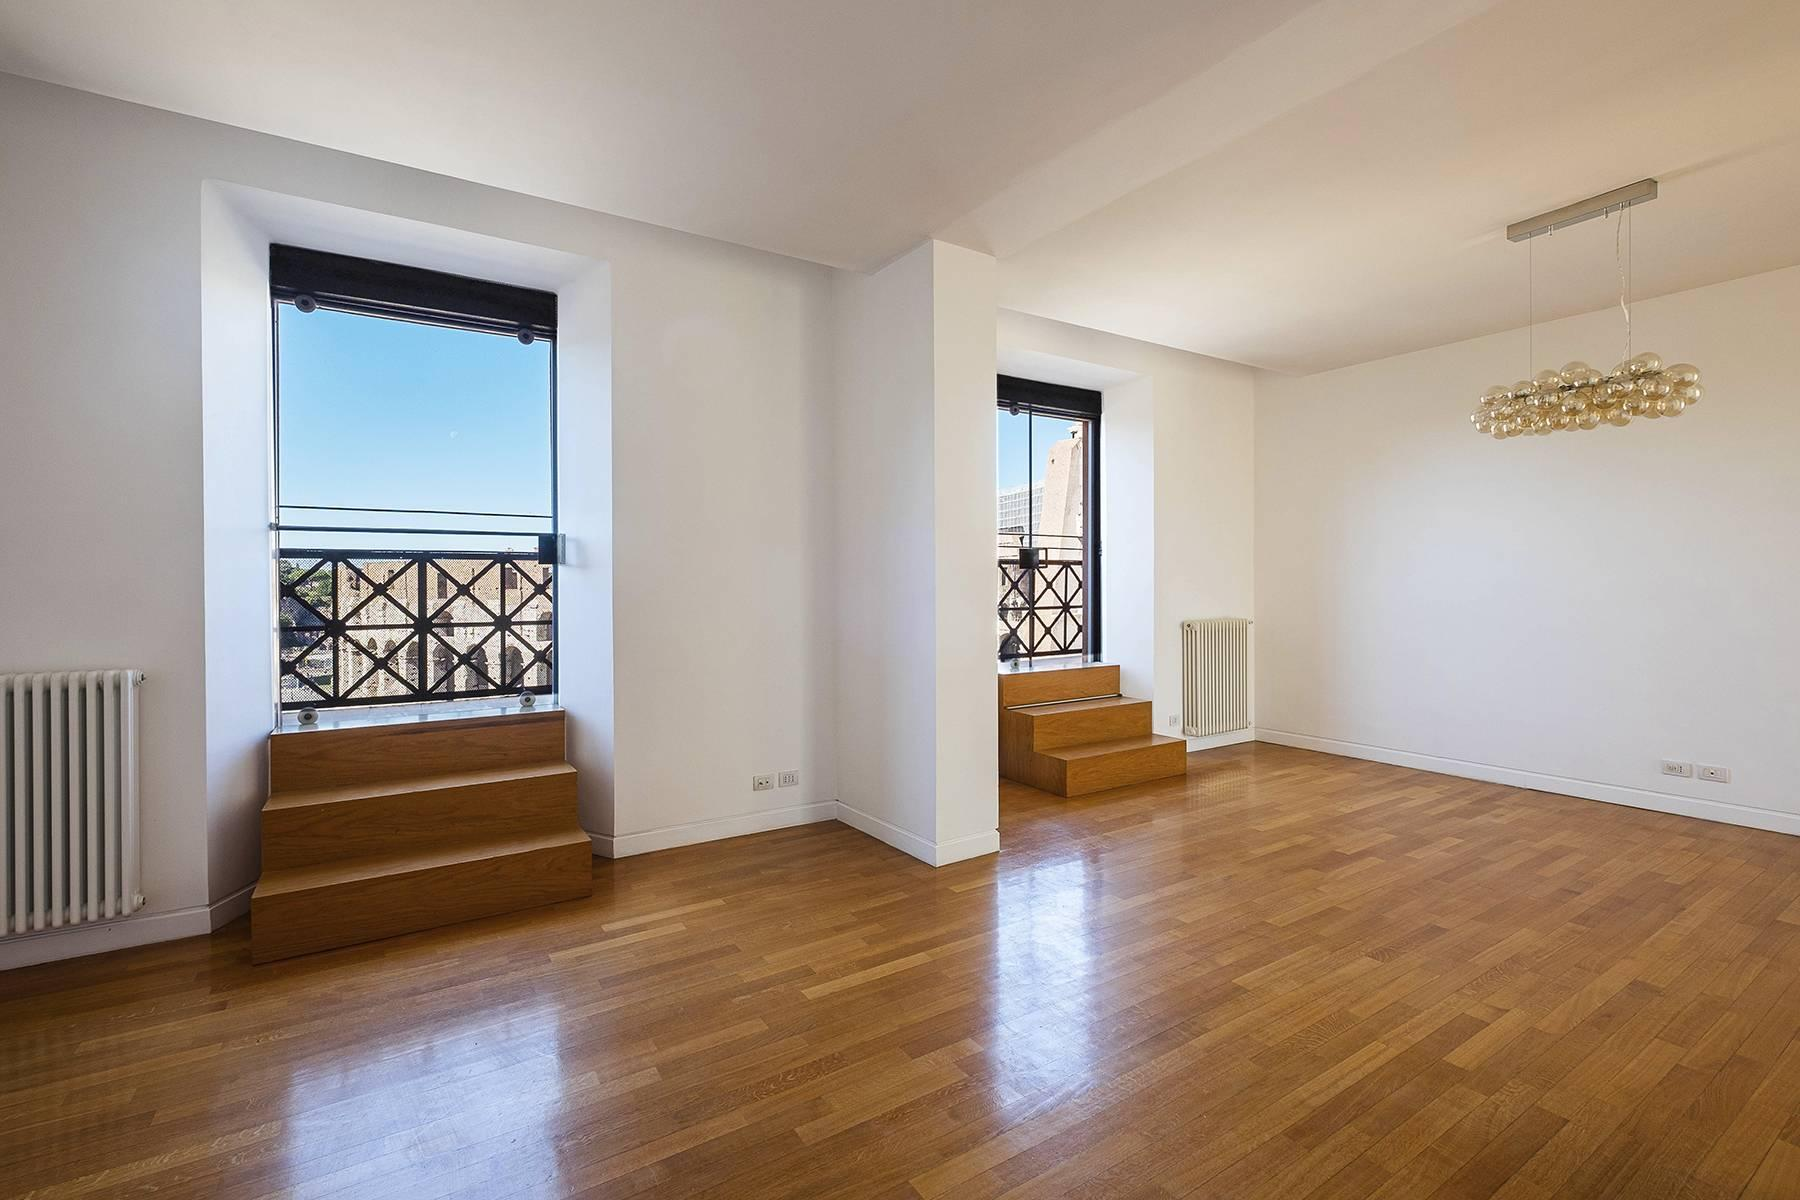 Charming apartment with a fine view of the Colosseum - 7